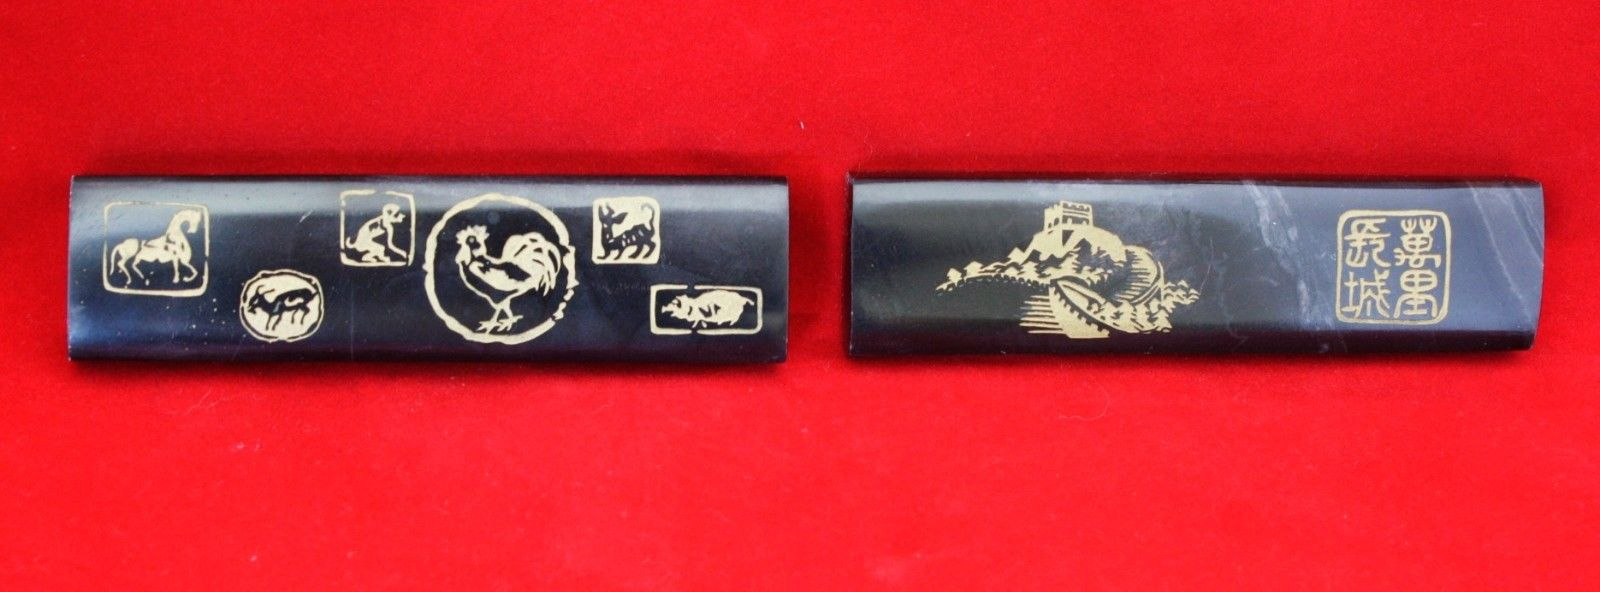 2 Asian Marble Paperweights - Black Bar Shaped with Designs